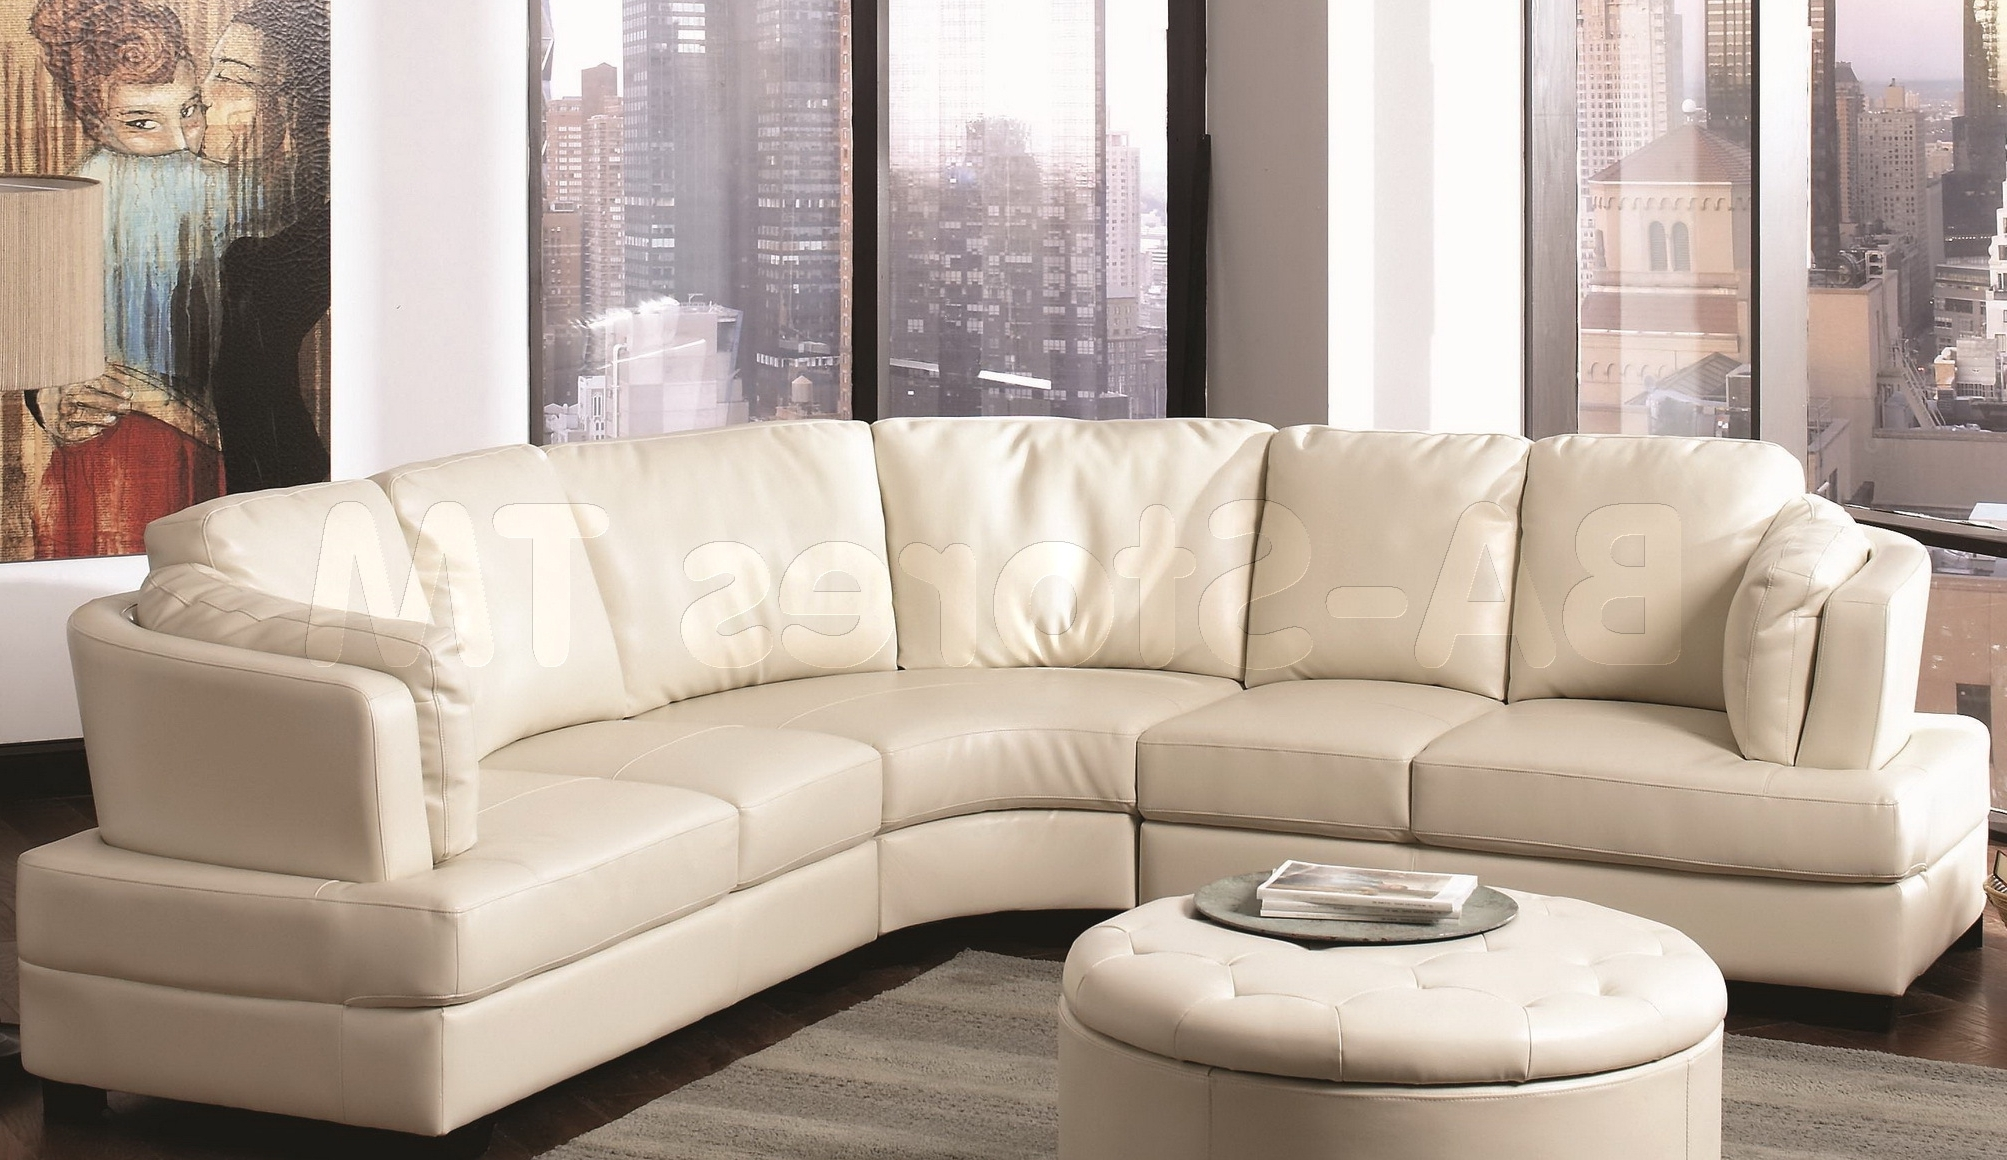 Cheap Sectional Throughout Most Up To Date Kmart Sectional Sofas (View 17 of 20)